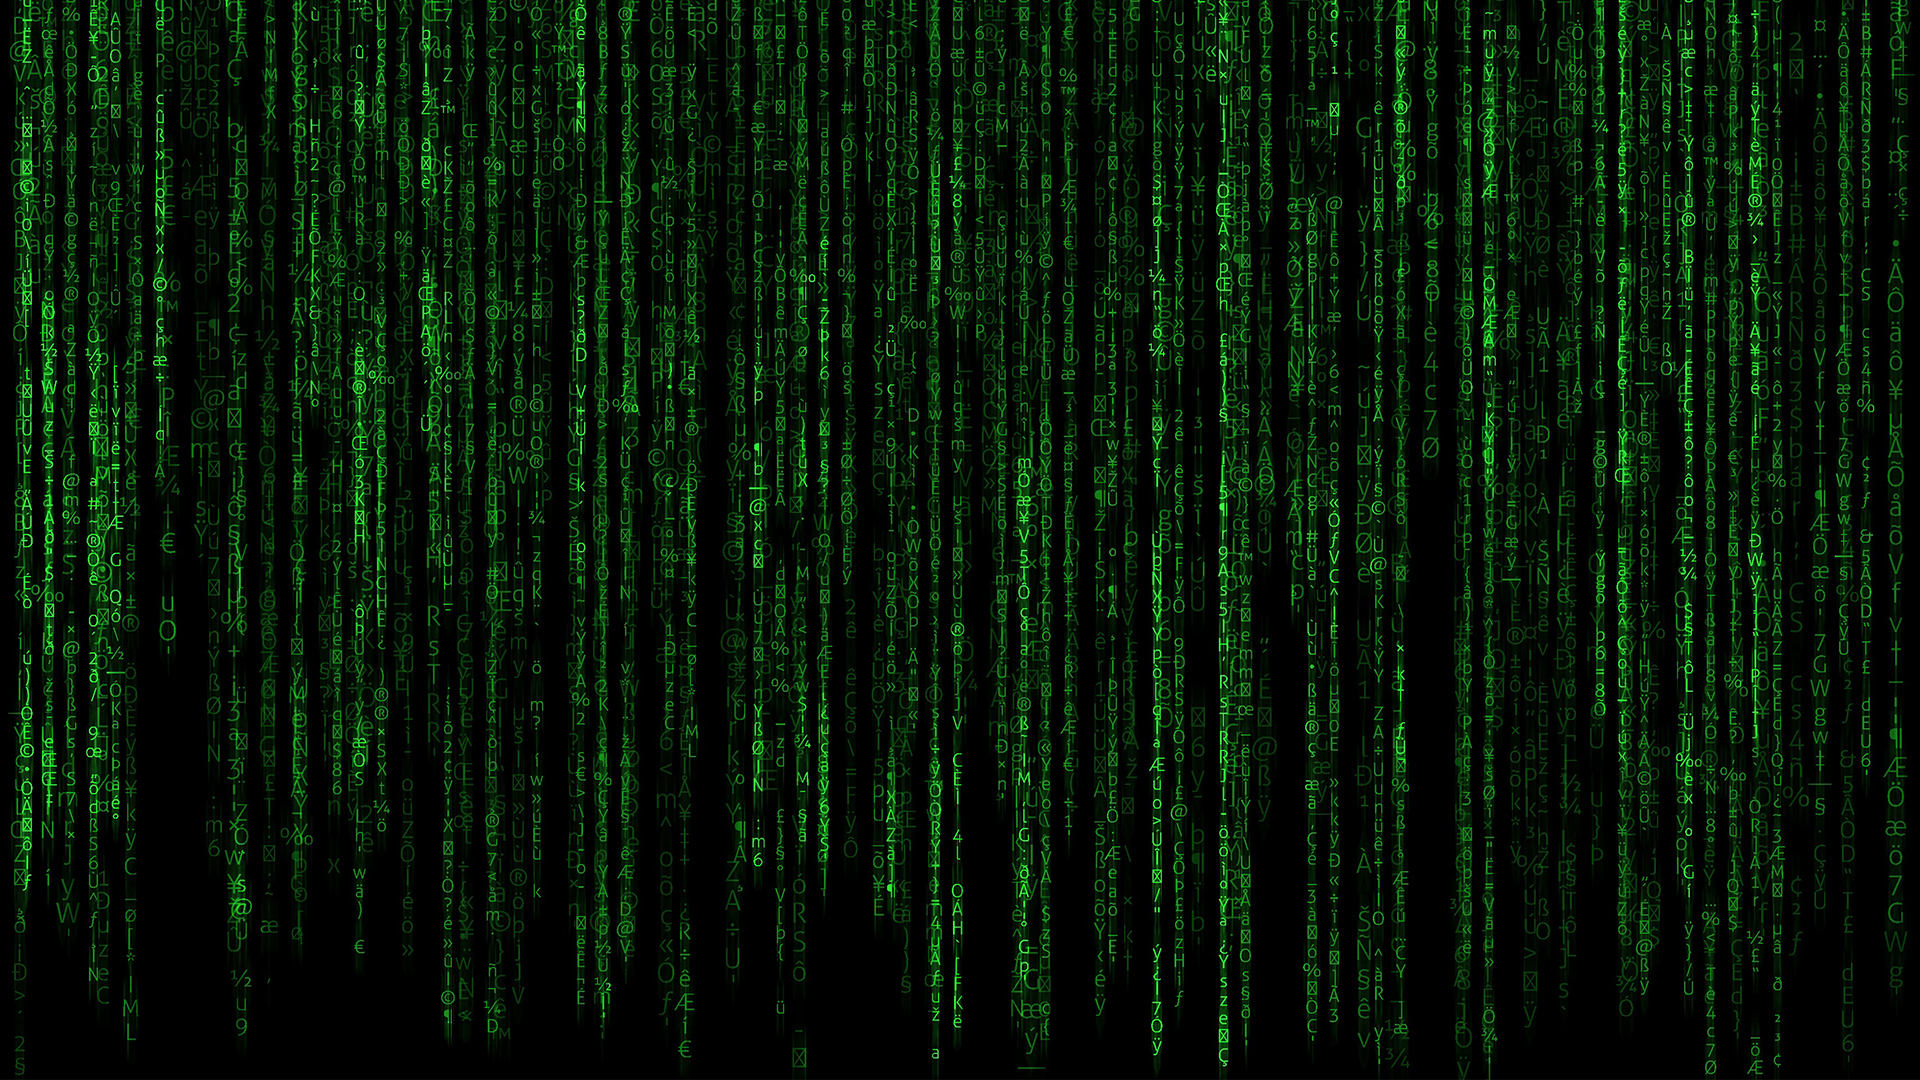 Free Matrix Decoded Chromebook Wallpaper Ready For Download